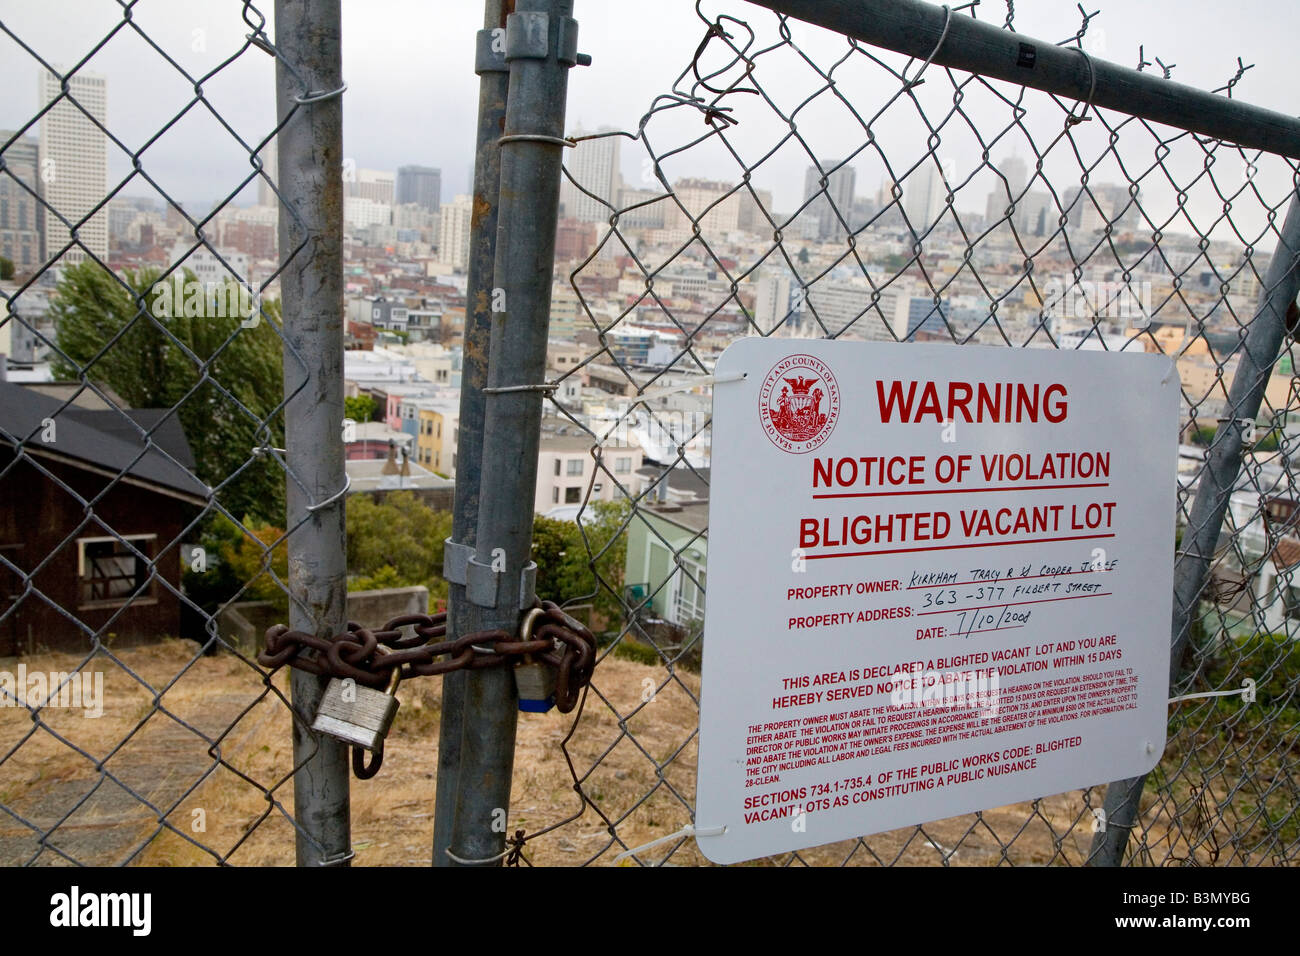 Government Notice Warns Property Owner to Correct Blighted Condition of Vacant Lot - Stock Image